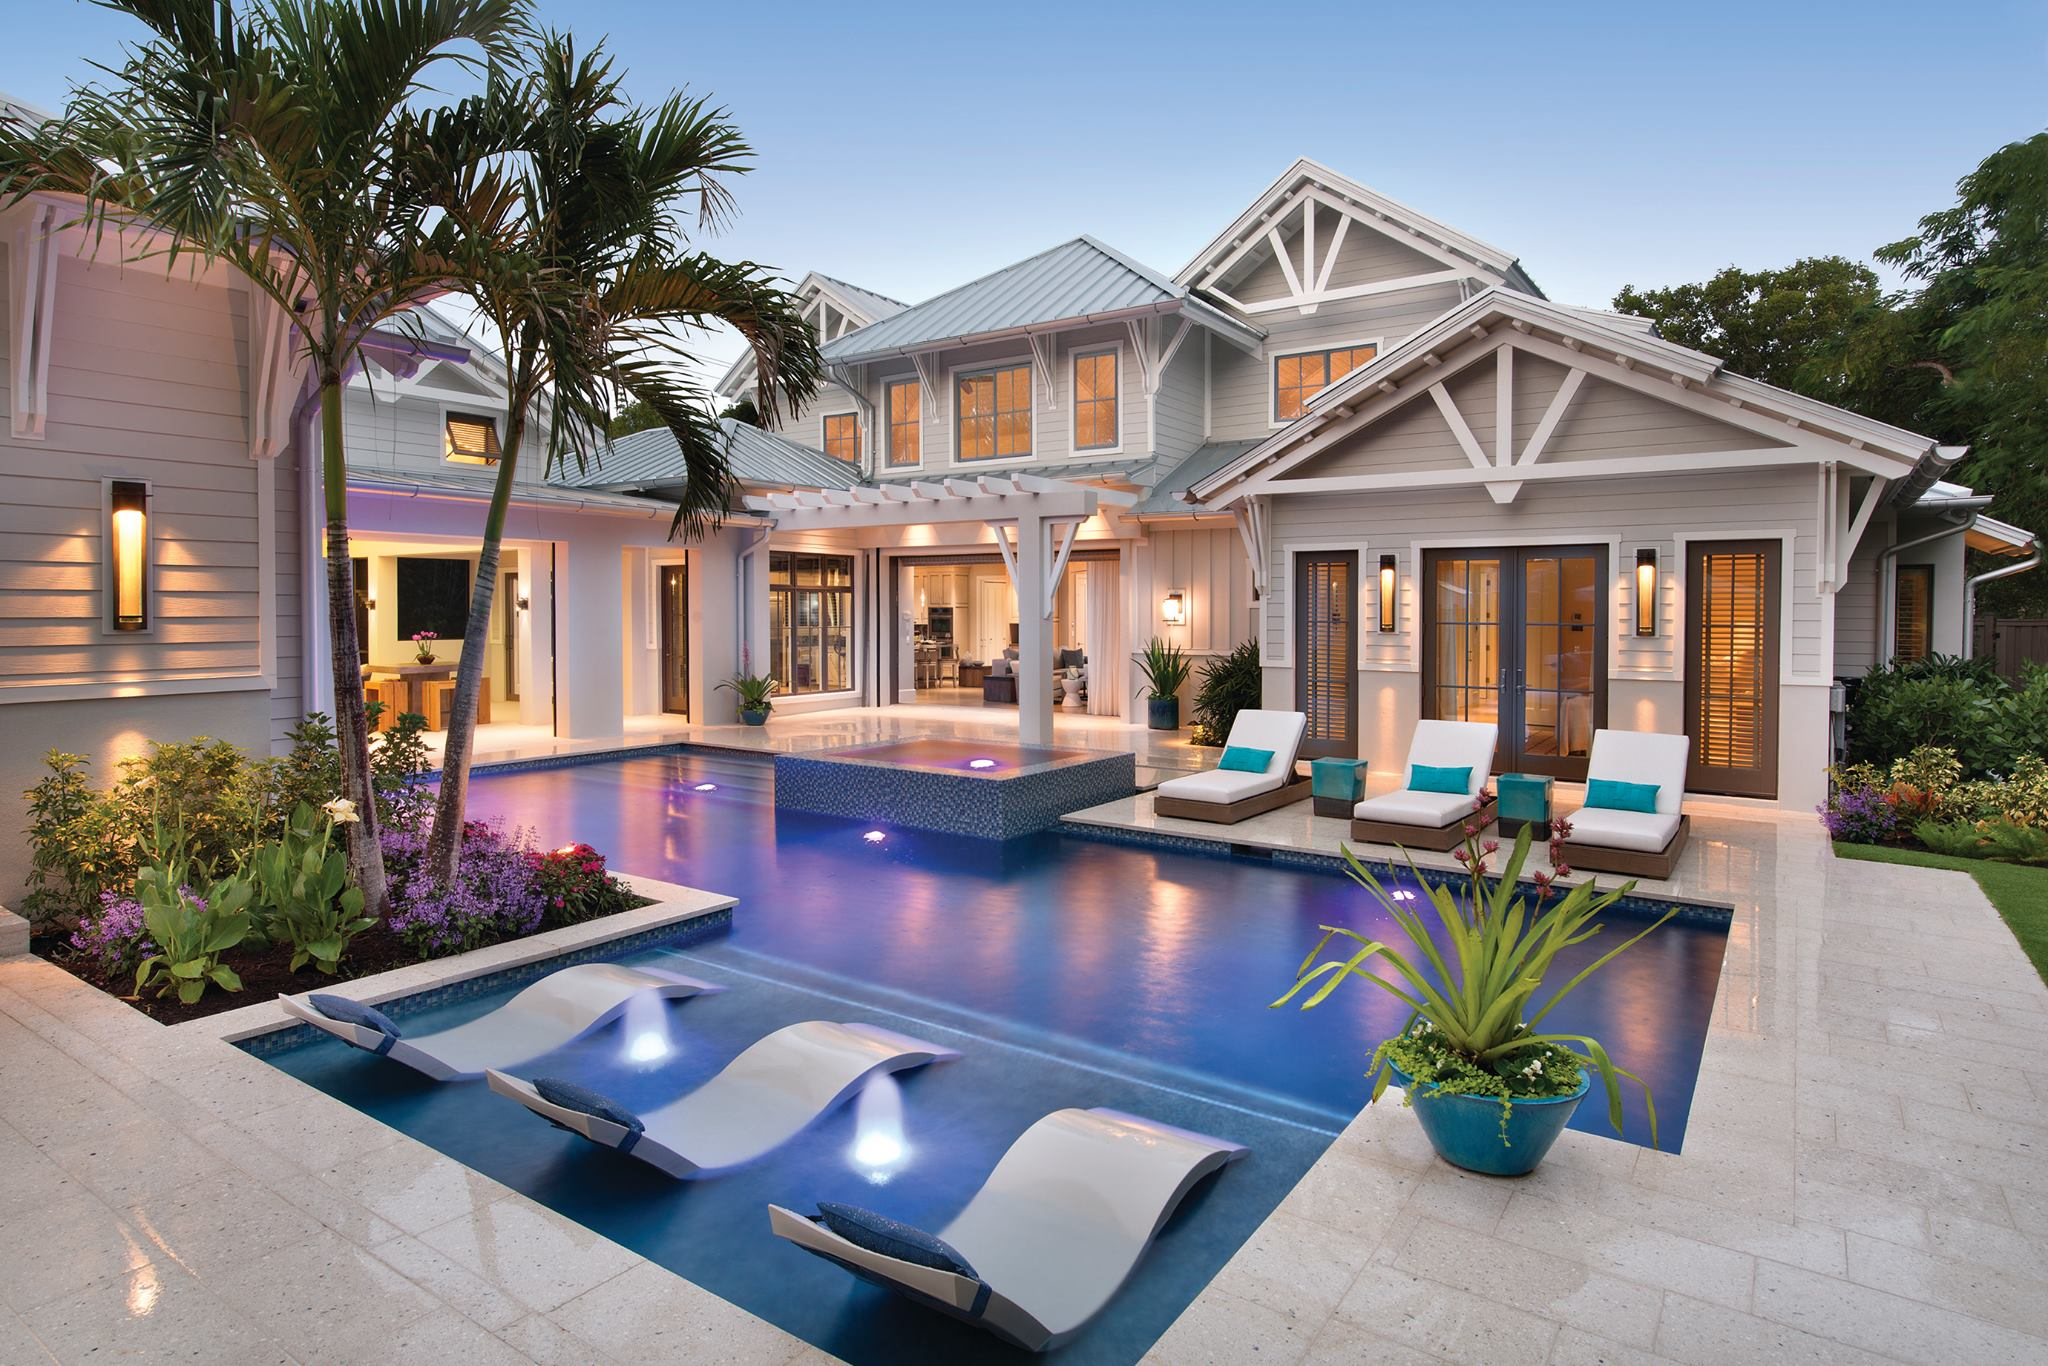 Luxury house with the pool